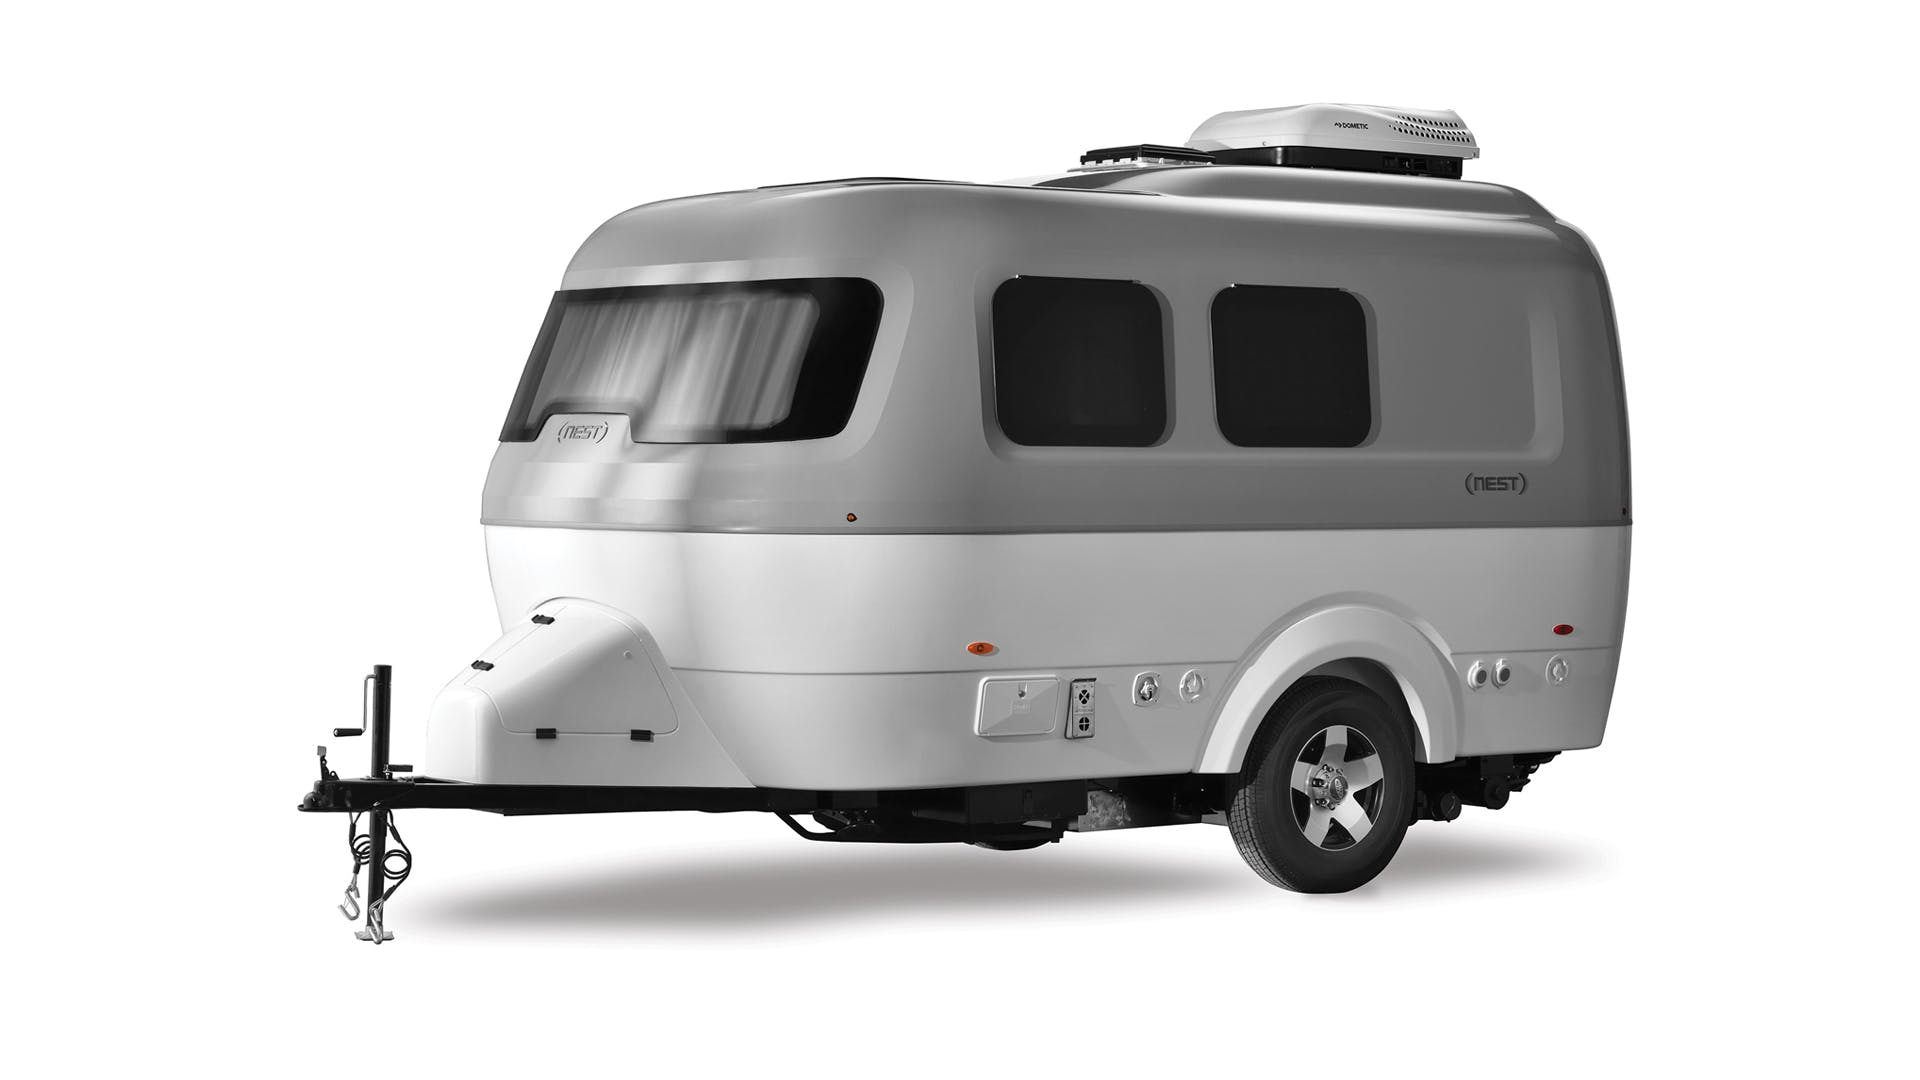 Nest by Airstream exterior fiberglass shell